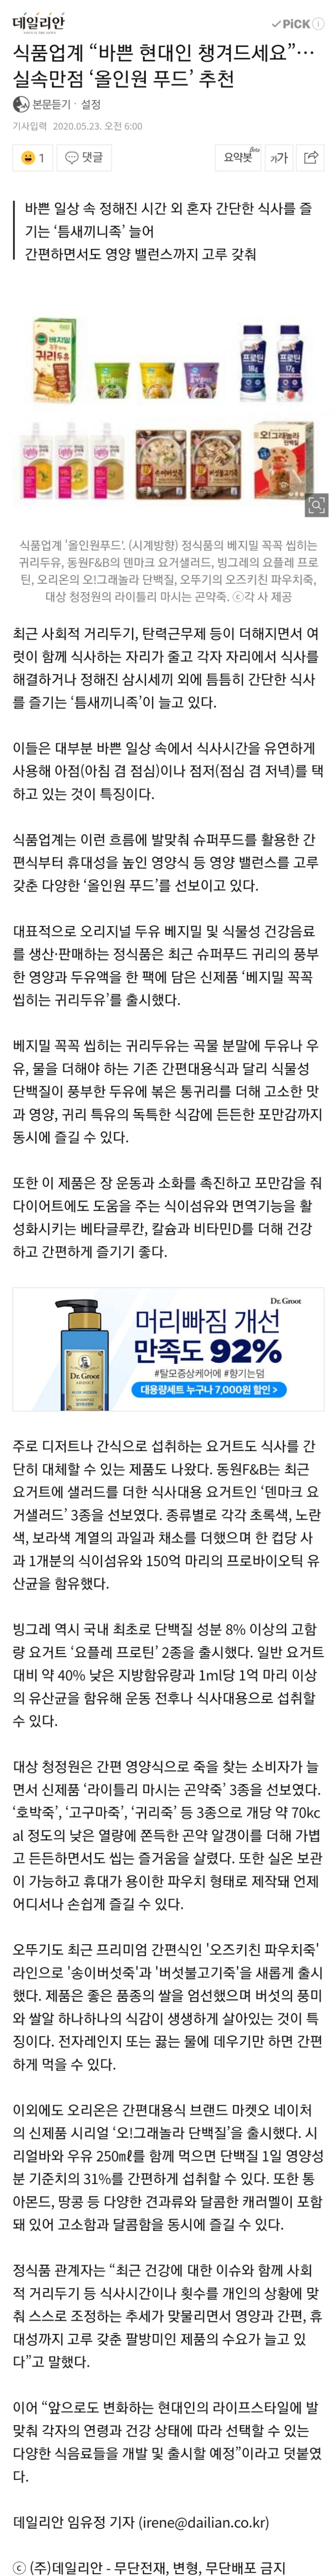 Screenshot_20200523-192128_NAVER.jpg